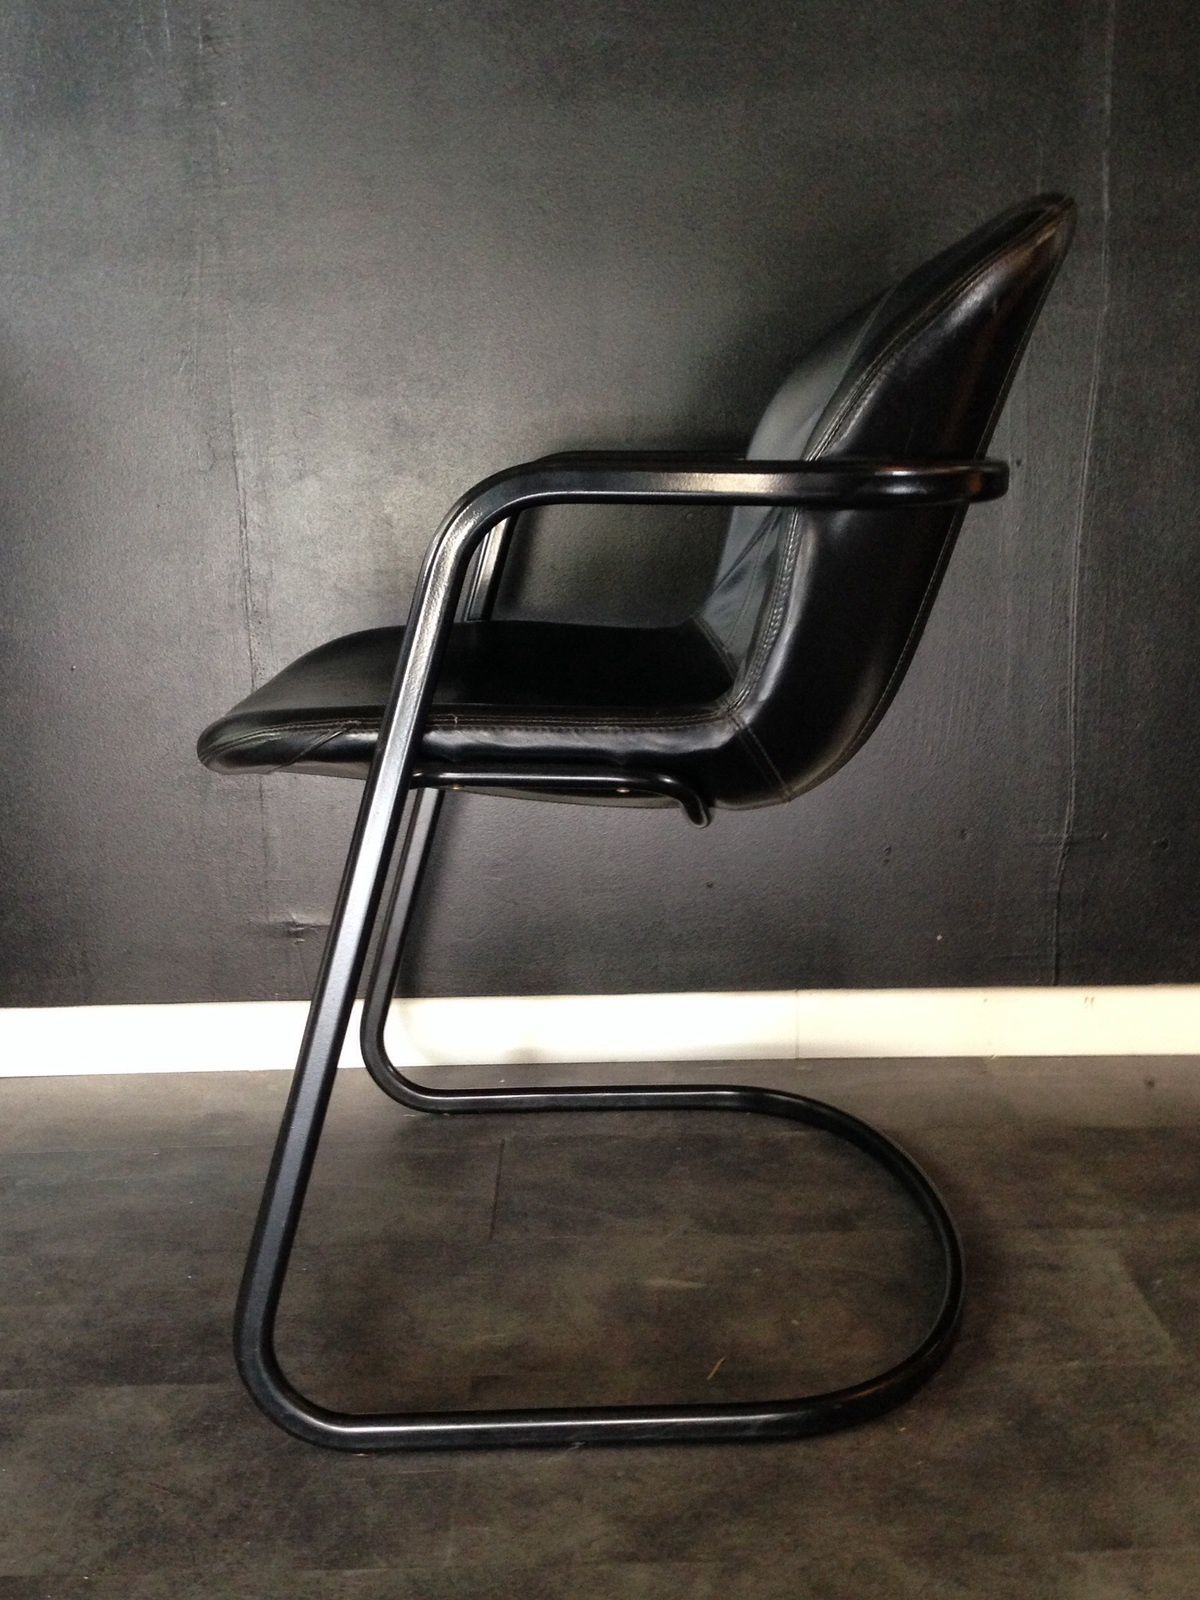 Fauteuil ou chaise Willy Rizzo Cidue mobilier vintage assise cuir Made in Italy antiquite antiquaire Bondues Lille nord france